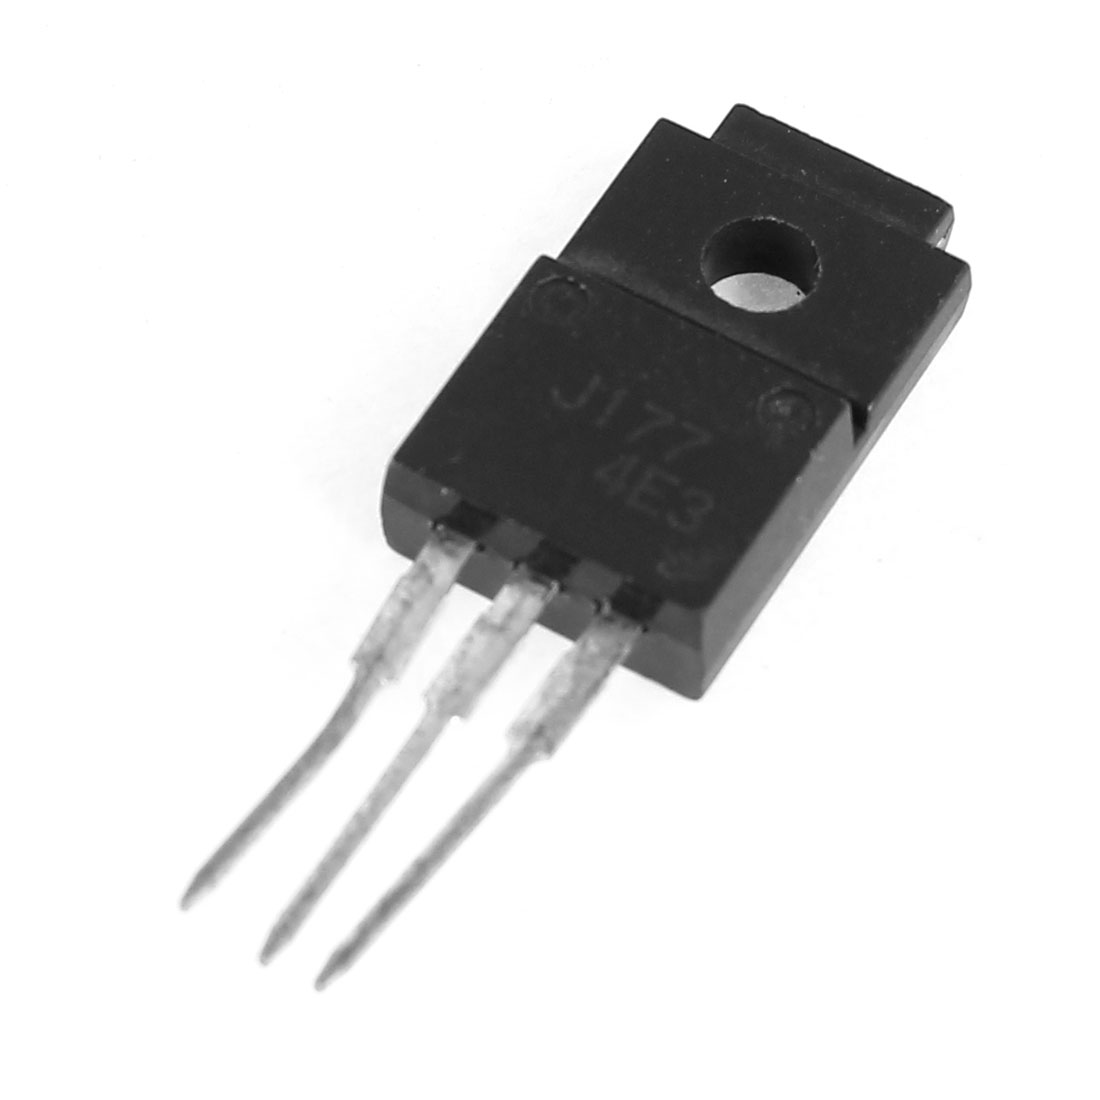 J177 30V 50mA 400mW 3 Pin Terminals TO-92 Package Complementary Semiconductor NPN Silicon Transistor